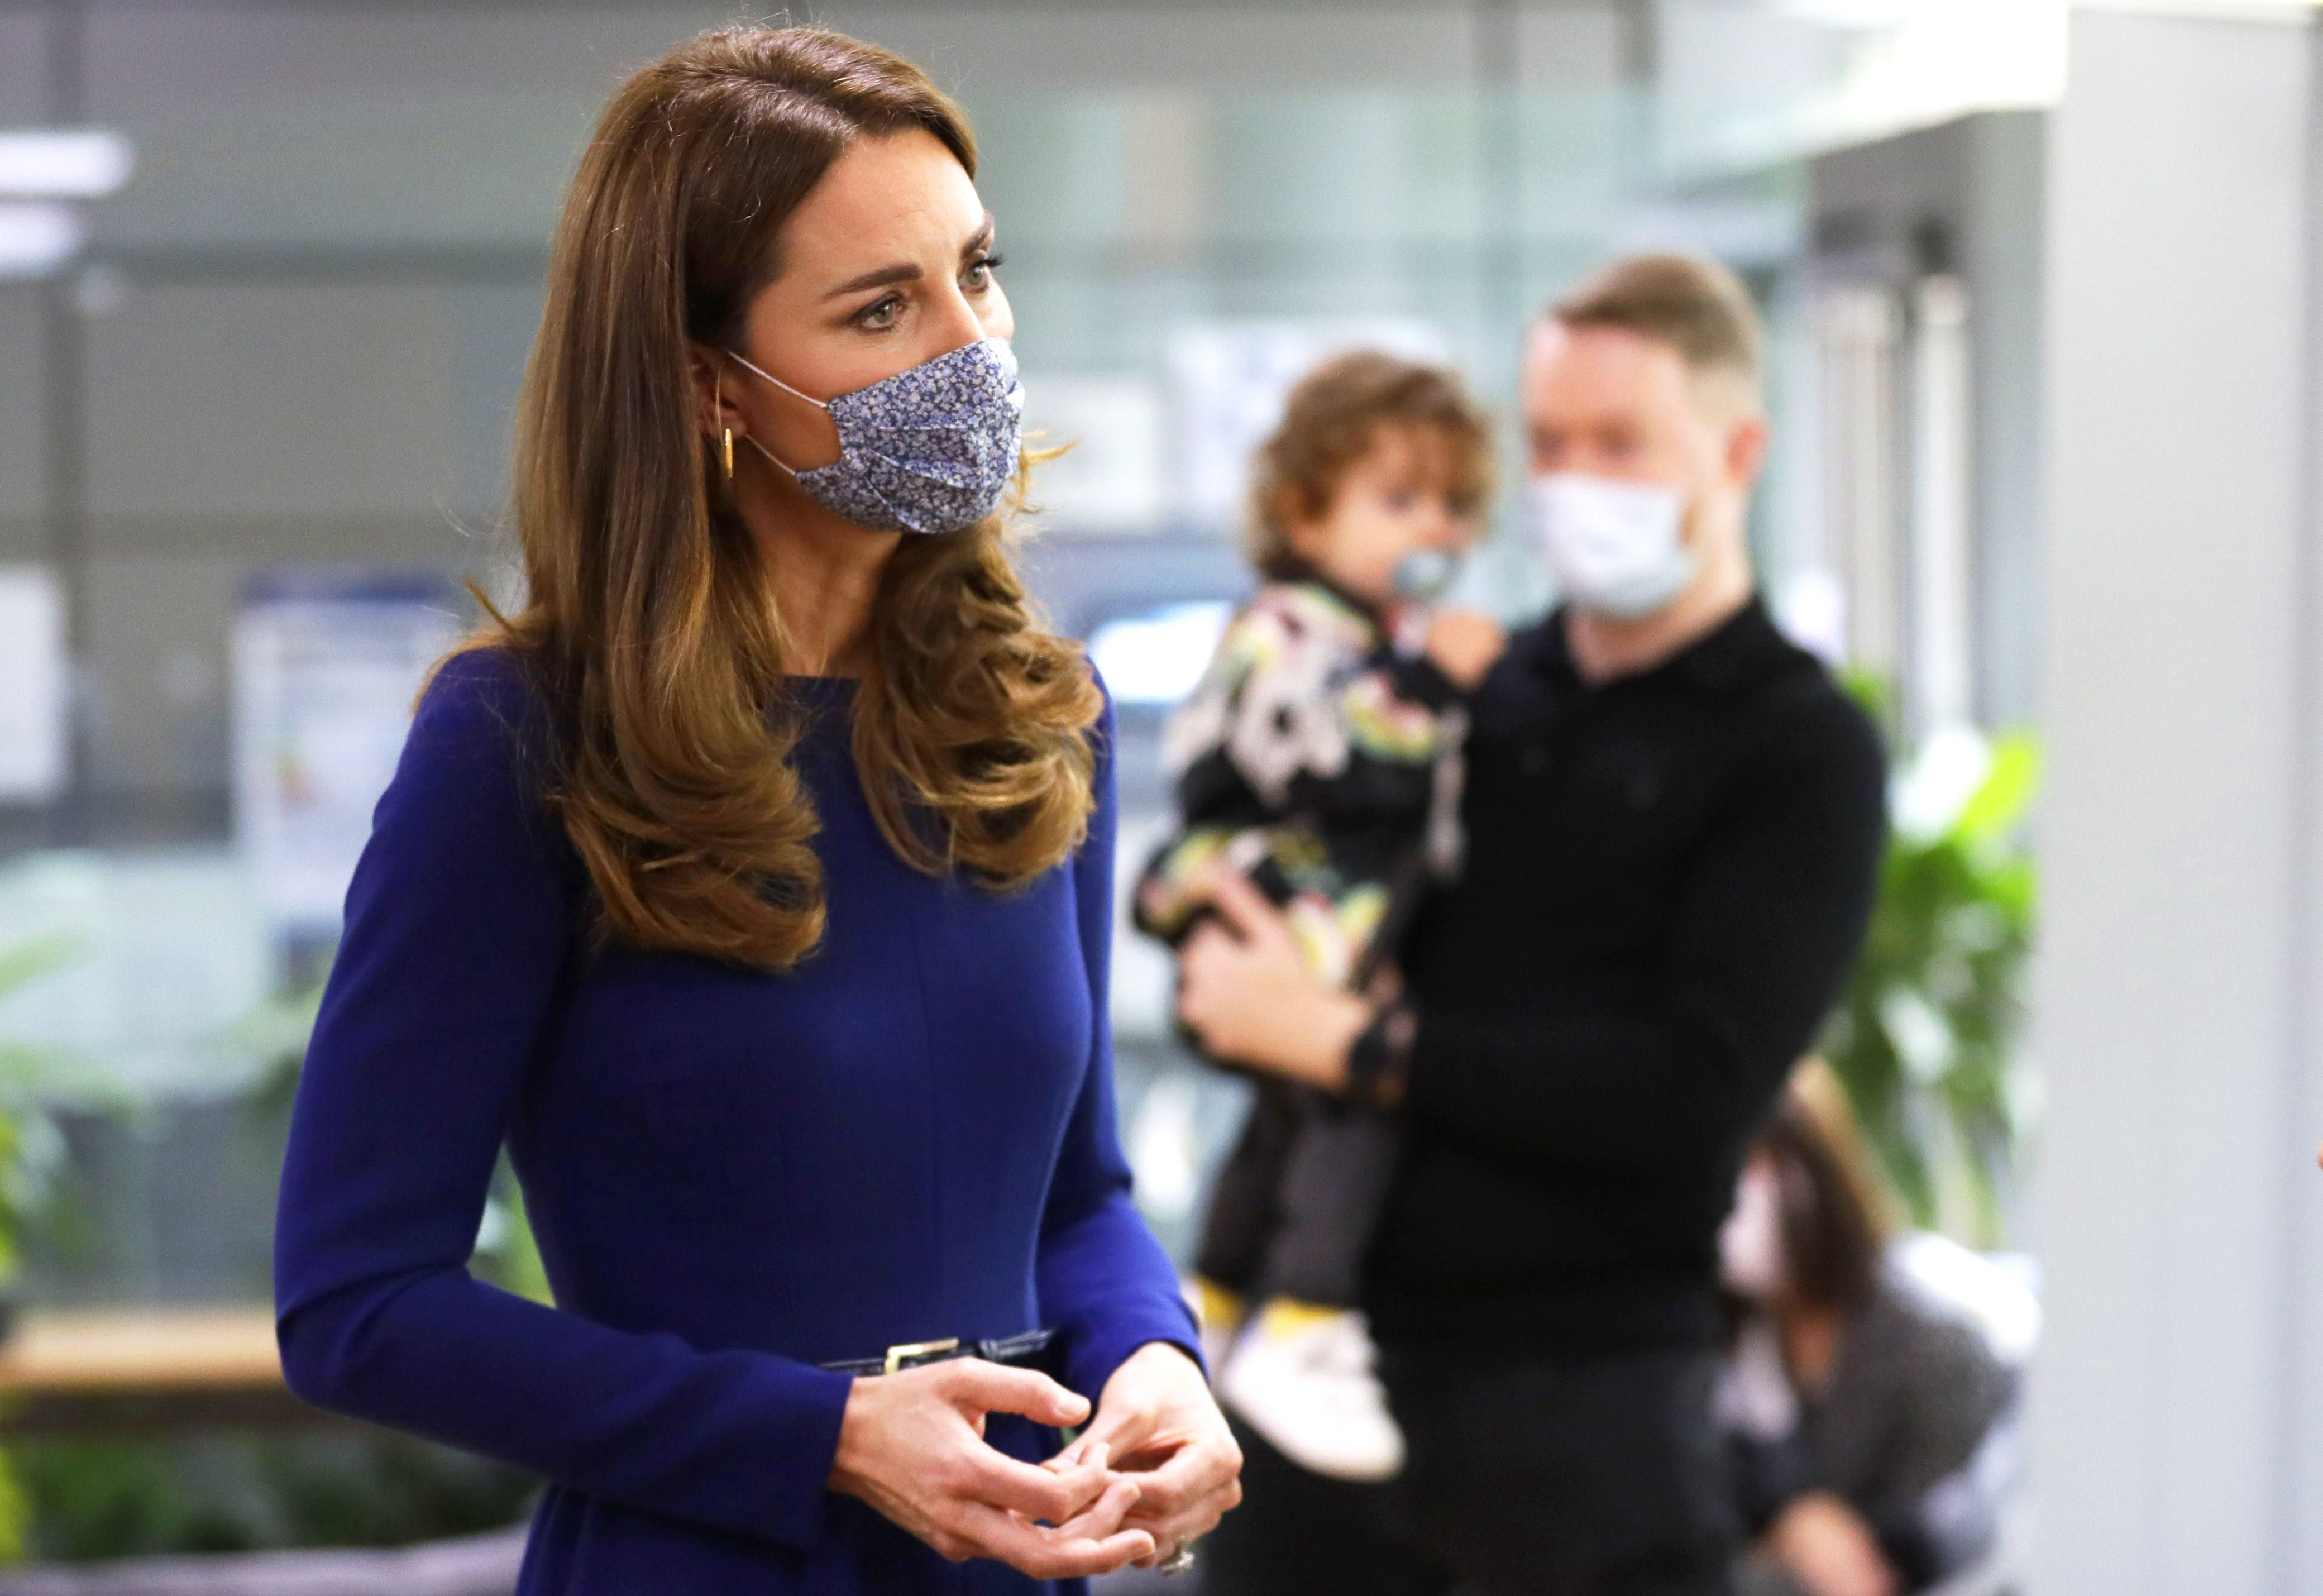 kate middleton matches her floral face mask to her blue dress her floral face mask to her blue dress